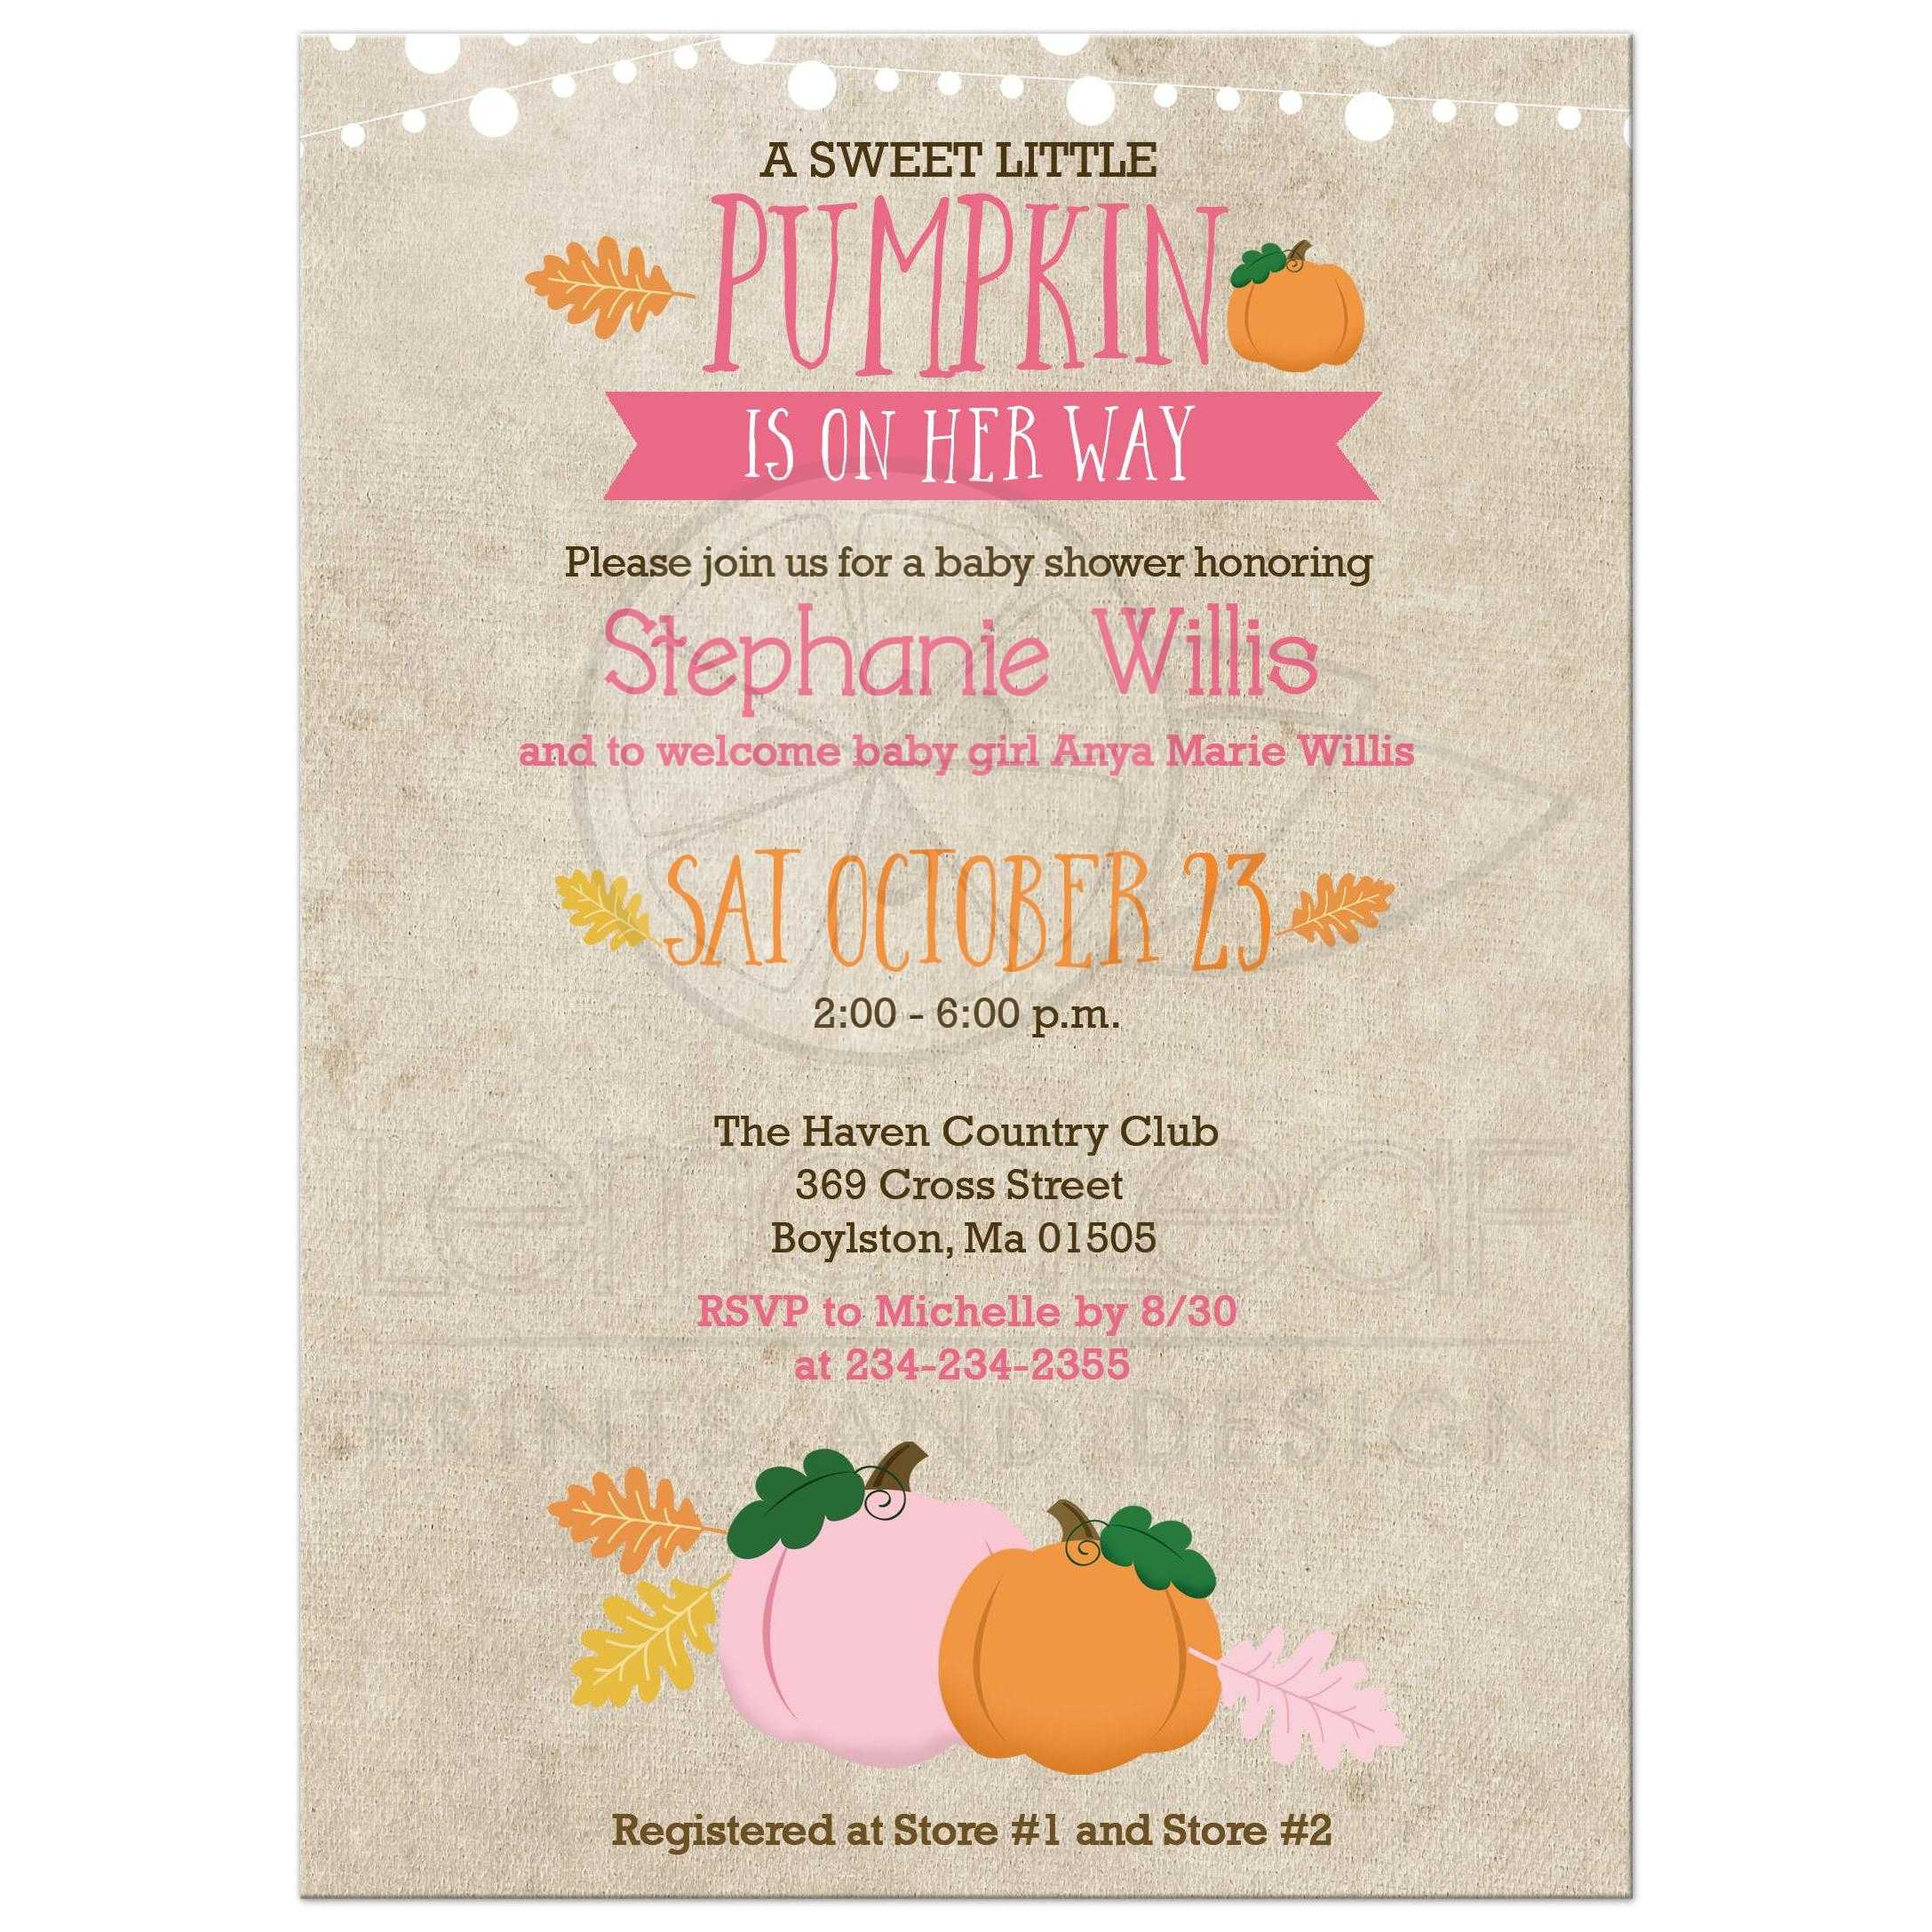 image relating to Printable Girl Baby Shower Invitations named Minimal Pumpkin Youngster Shower Invitation Crimson and Orange Pumpkin Tumble Invites